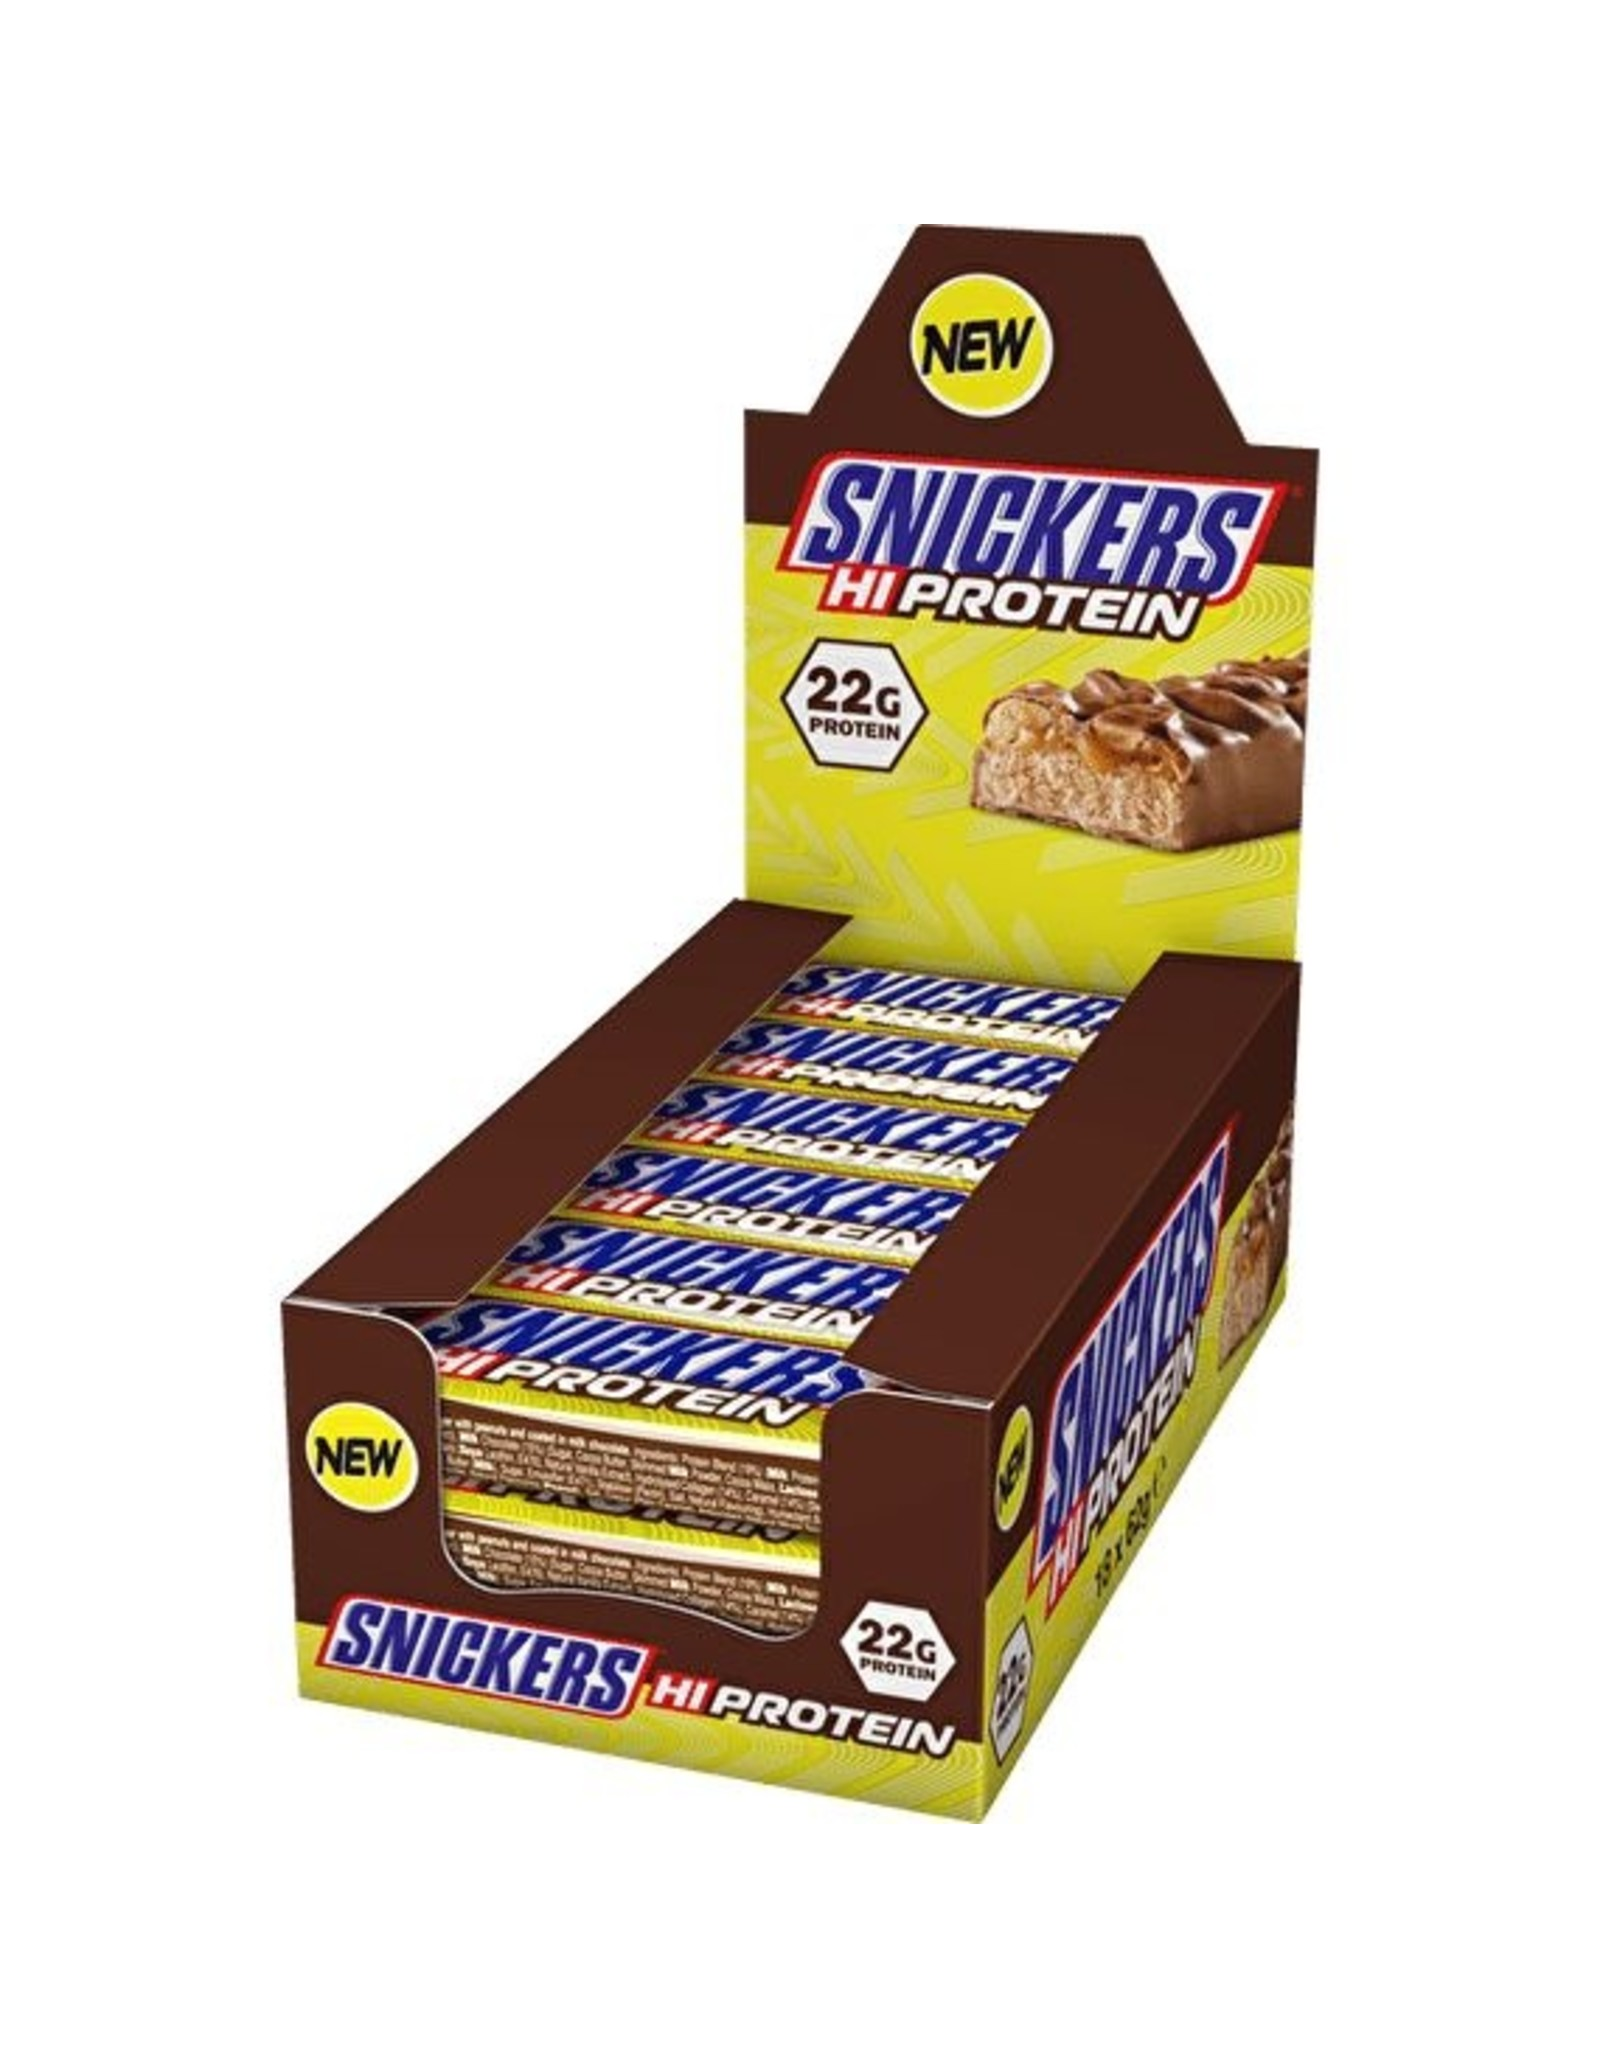 Mars Inc. SNICKERS HI protein